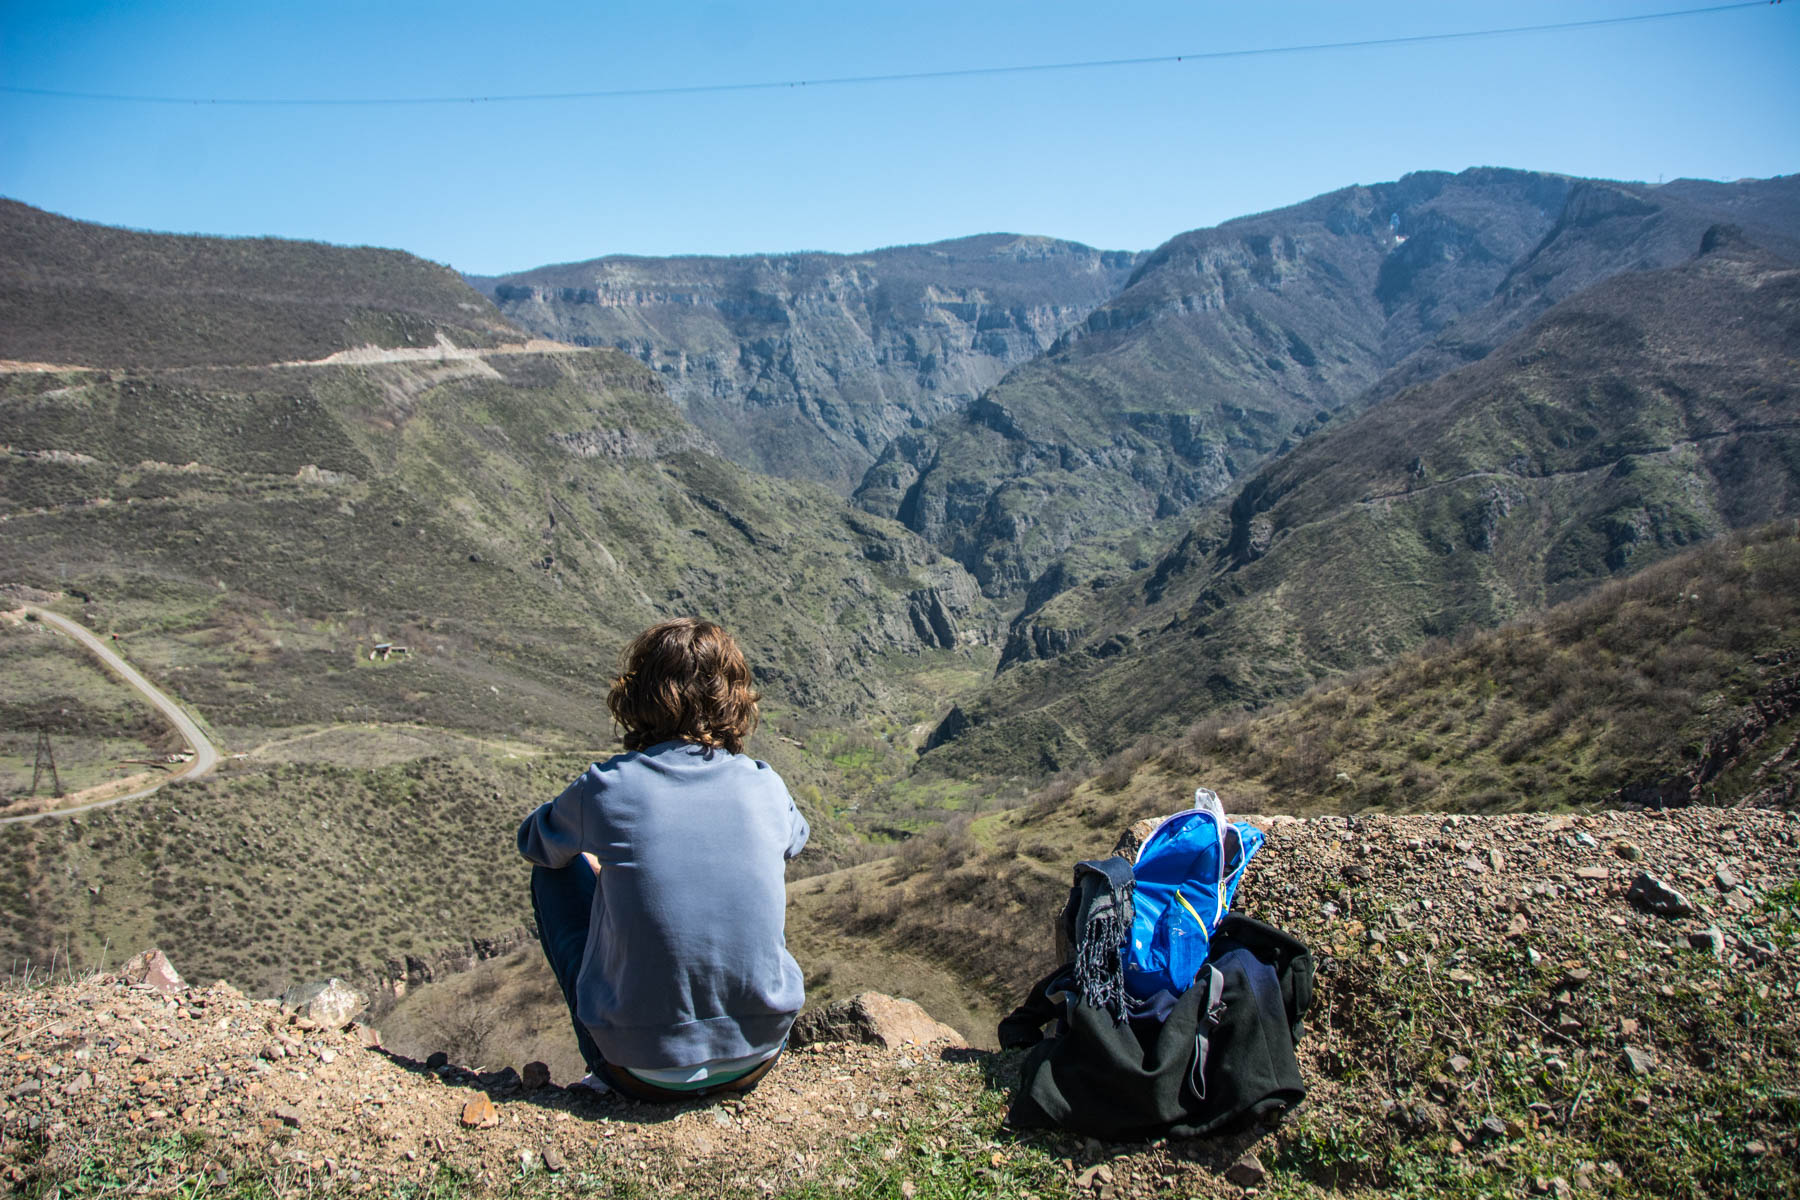 How to get to Tatev from Goris, Armenia - Admiring the view on the way back to Goris from Tatev monastery in Armenia.